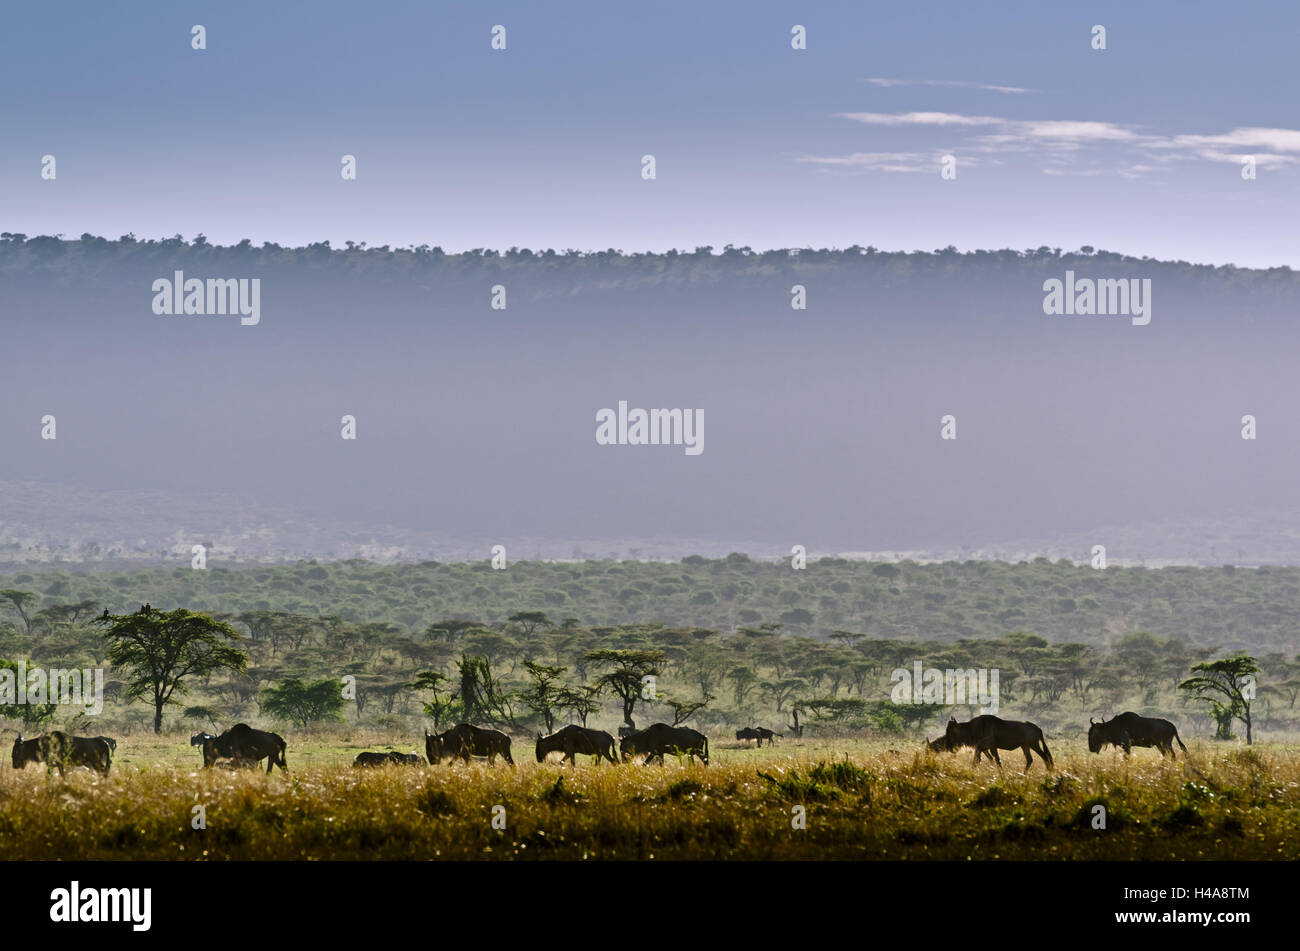 Africa, East Africa, Tanzania, Serengeti, animal world, gnus, - Stock Image